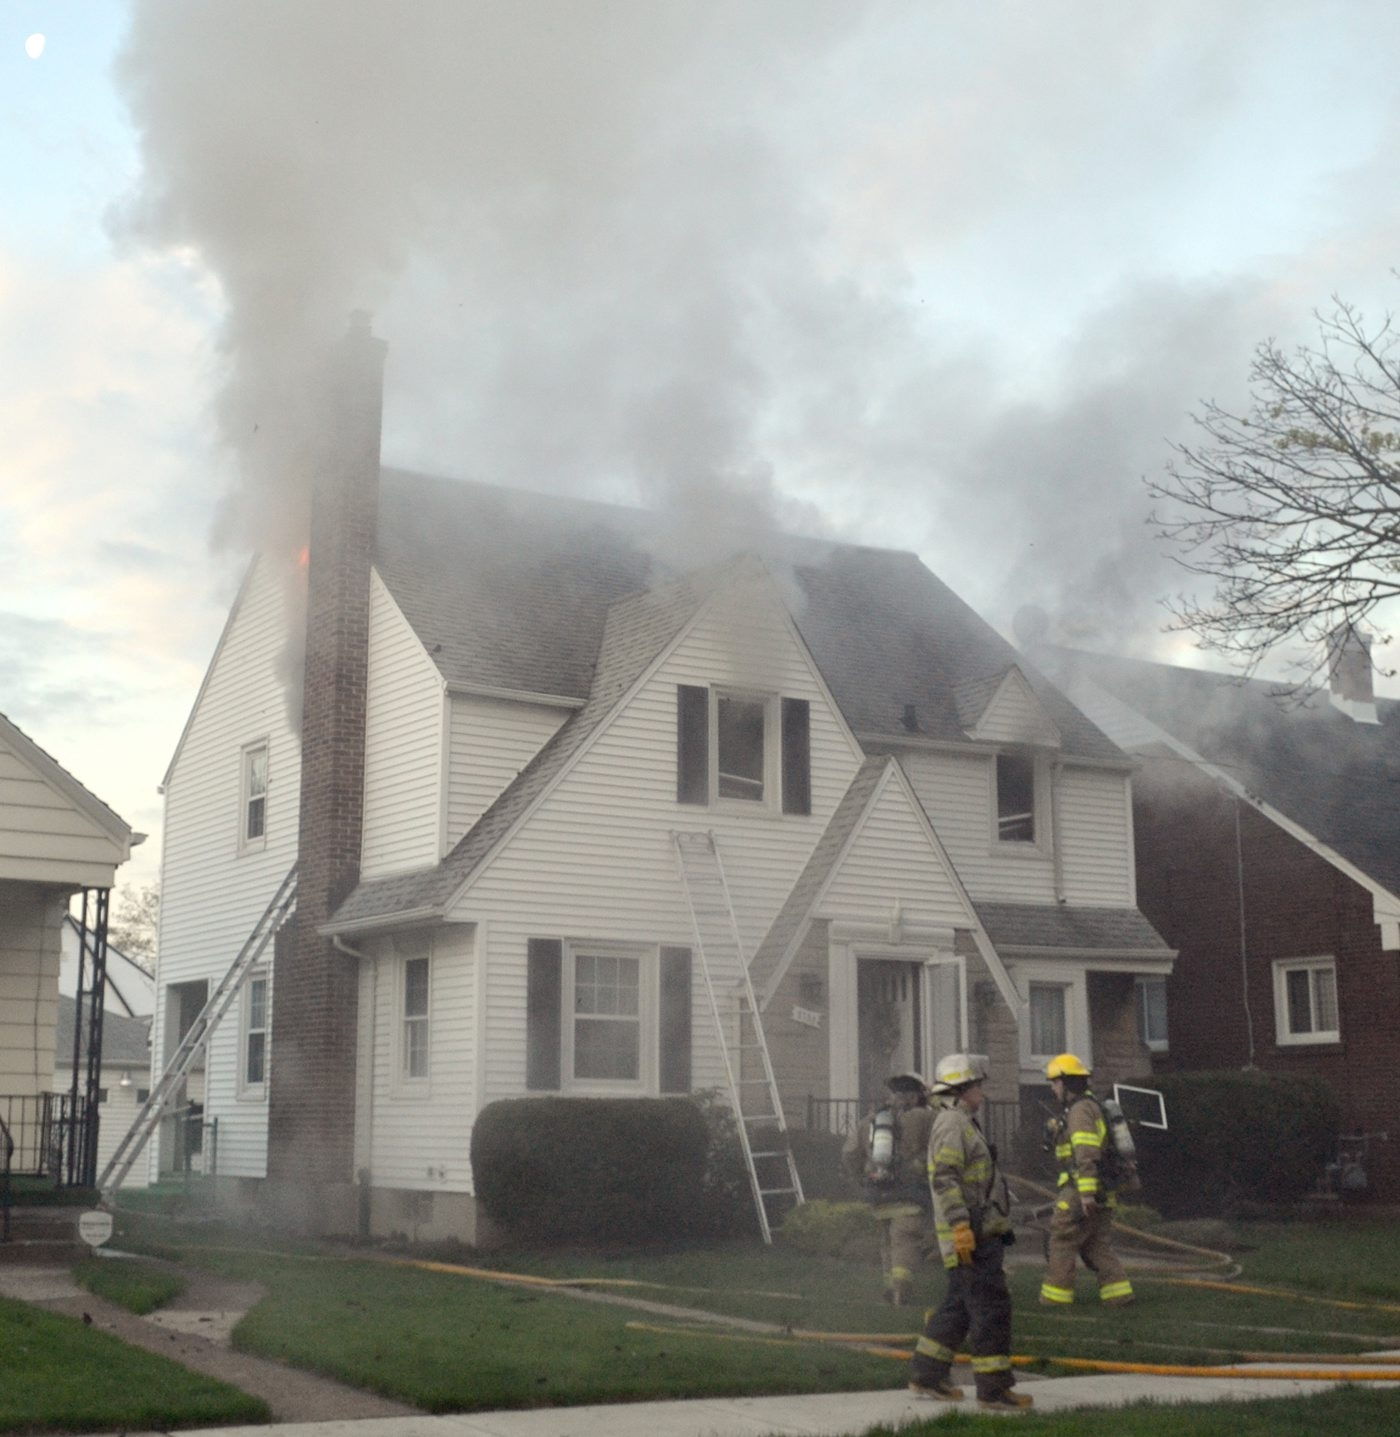 A 96-year-old woman died this morning in a house fire in her Woodlawn Avenue home, authorities reported. Maryanne Laratta was living alone in her home at 2753 Woodlawn Ave. She was found in her second-floor bedroom, in bed. (Larry Kensinger/contributor)